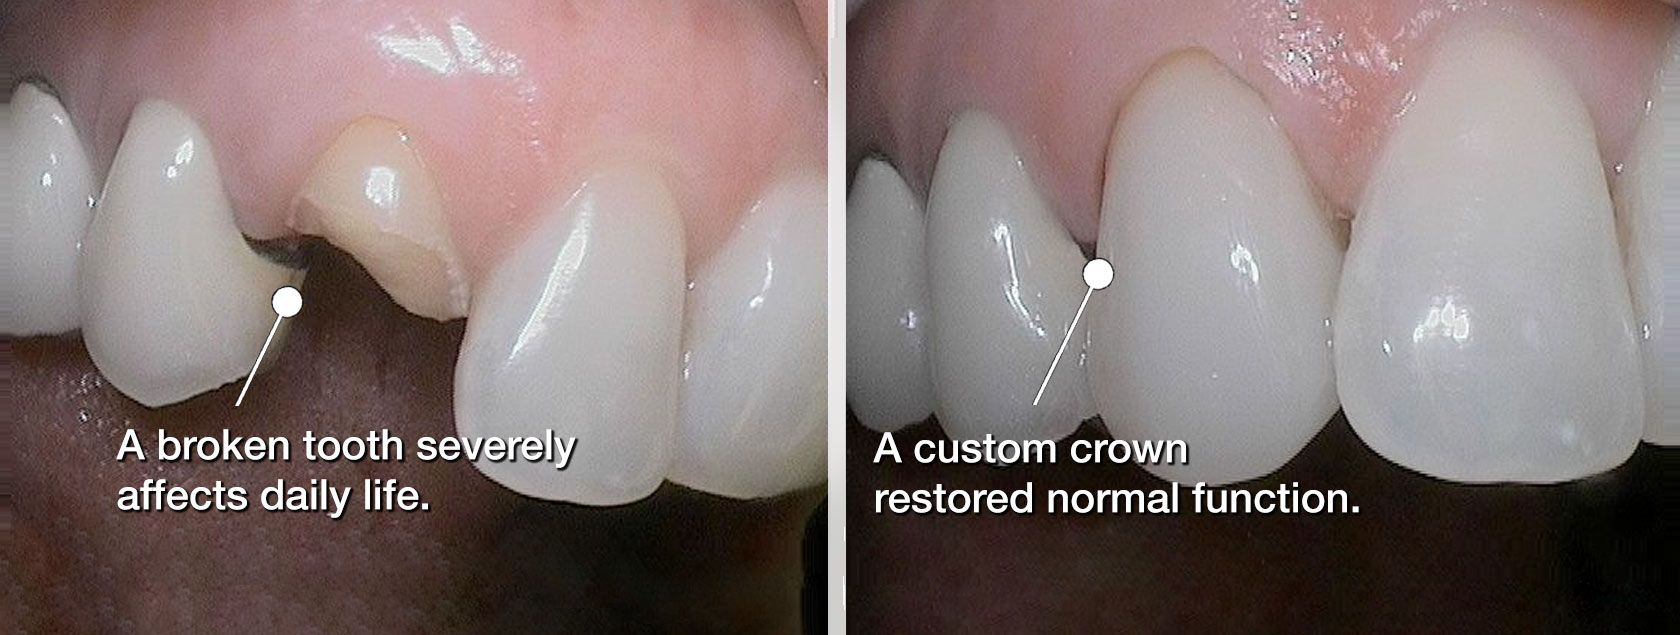 Before and after dental crown